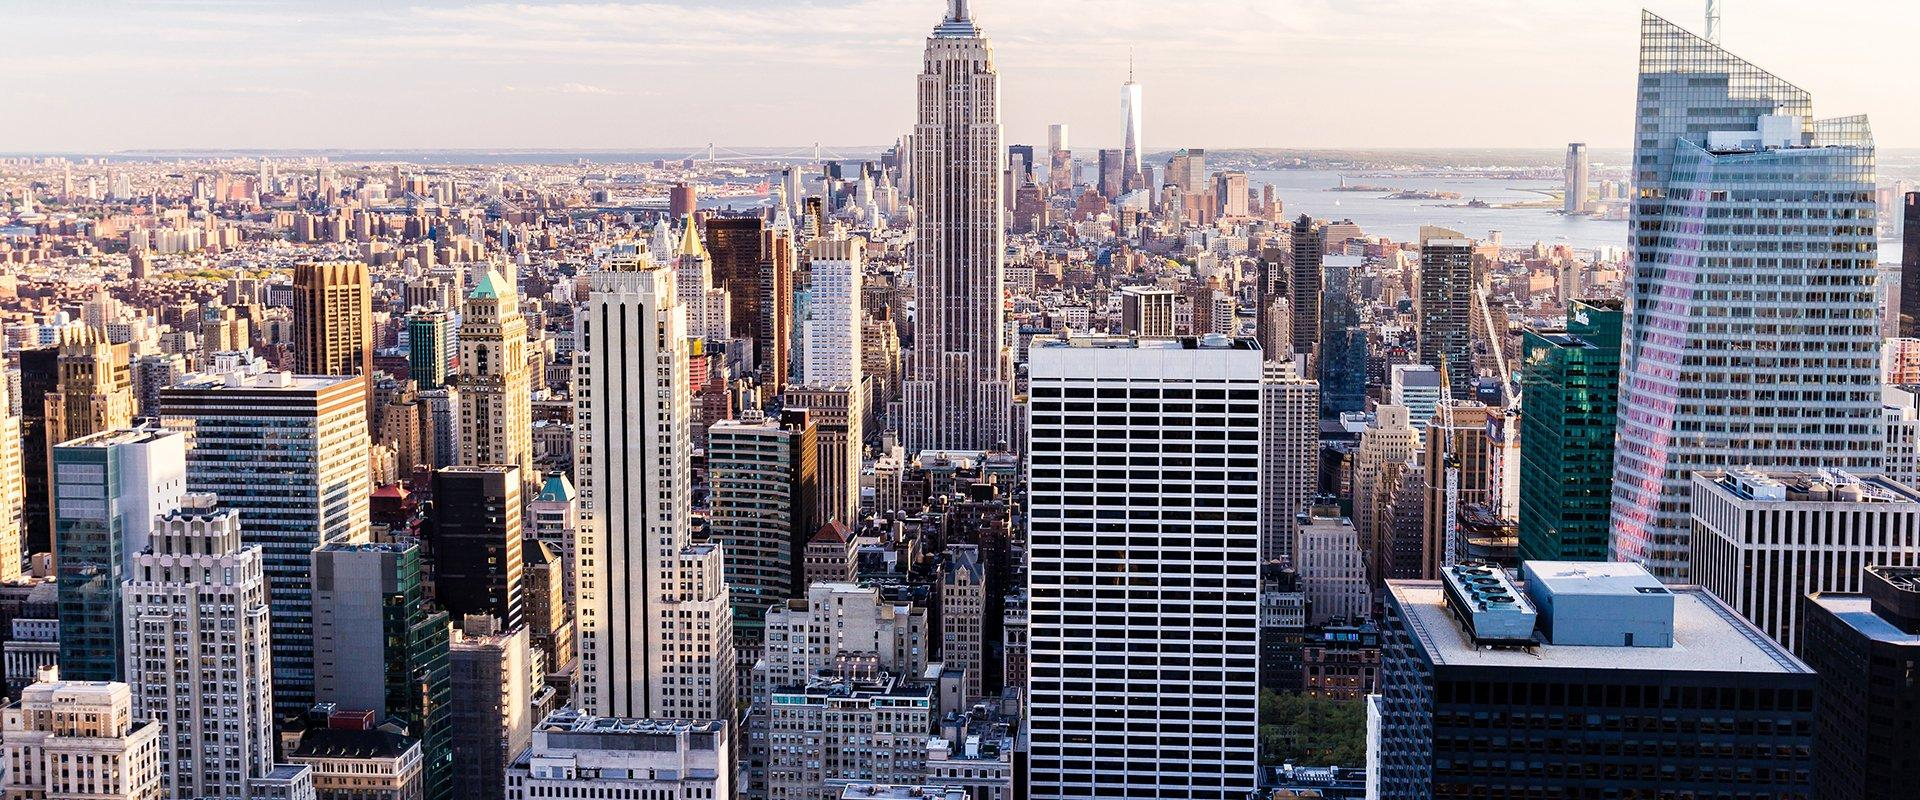 a skyline view of a new york city commercial district